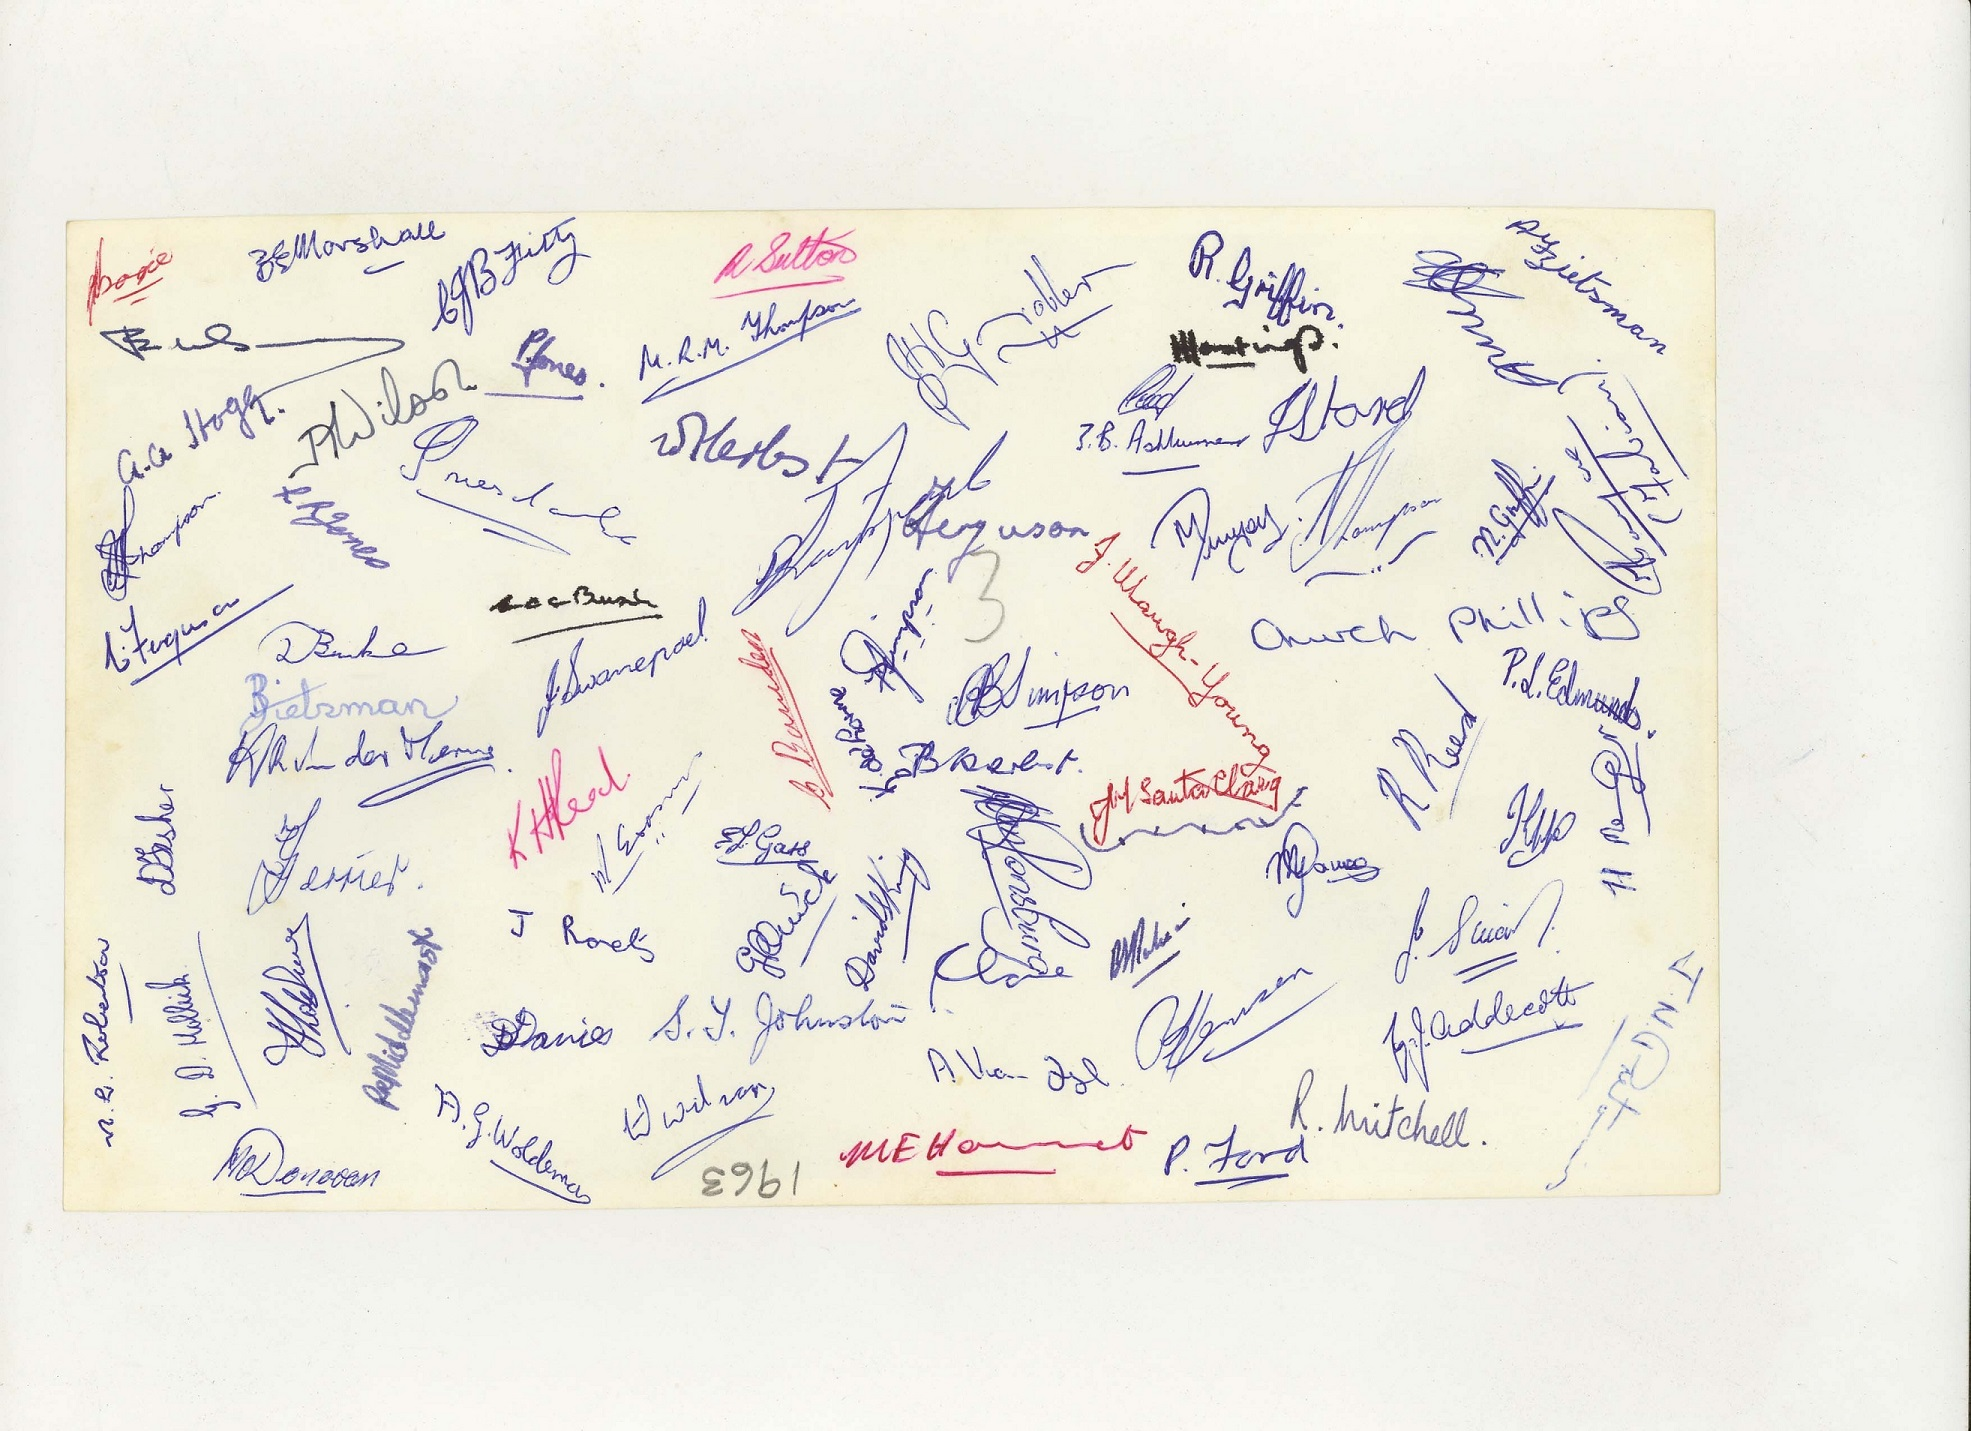 1963_charter_signatures